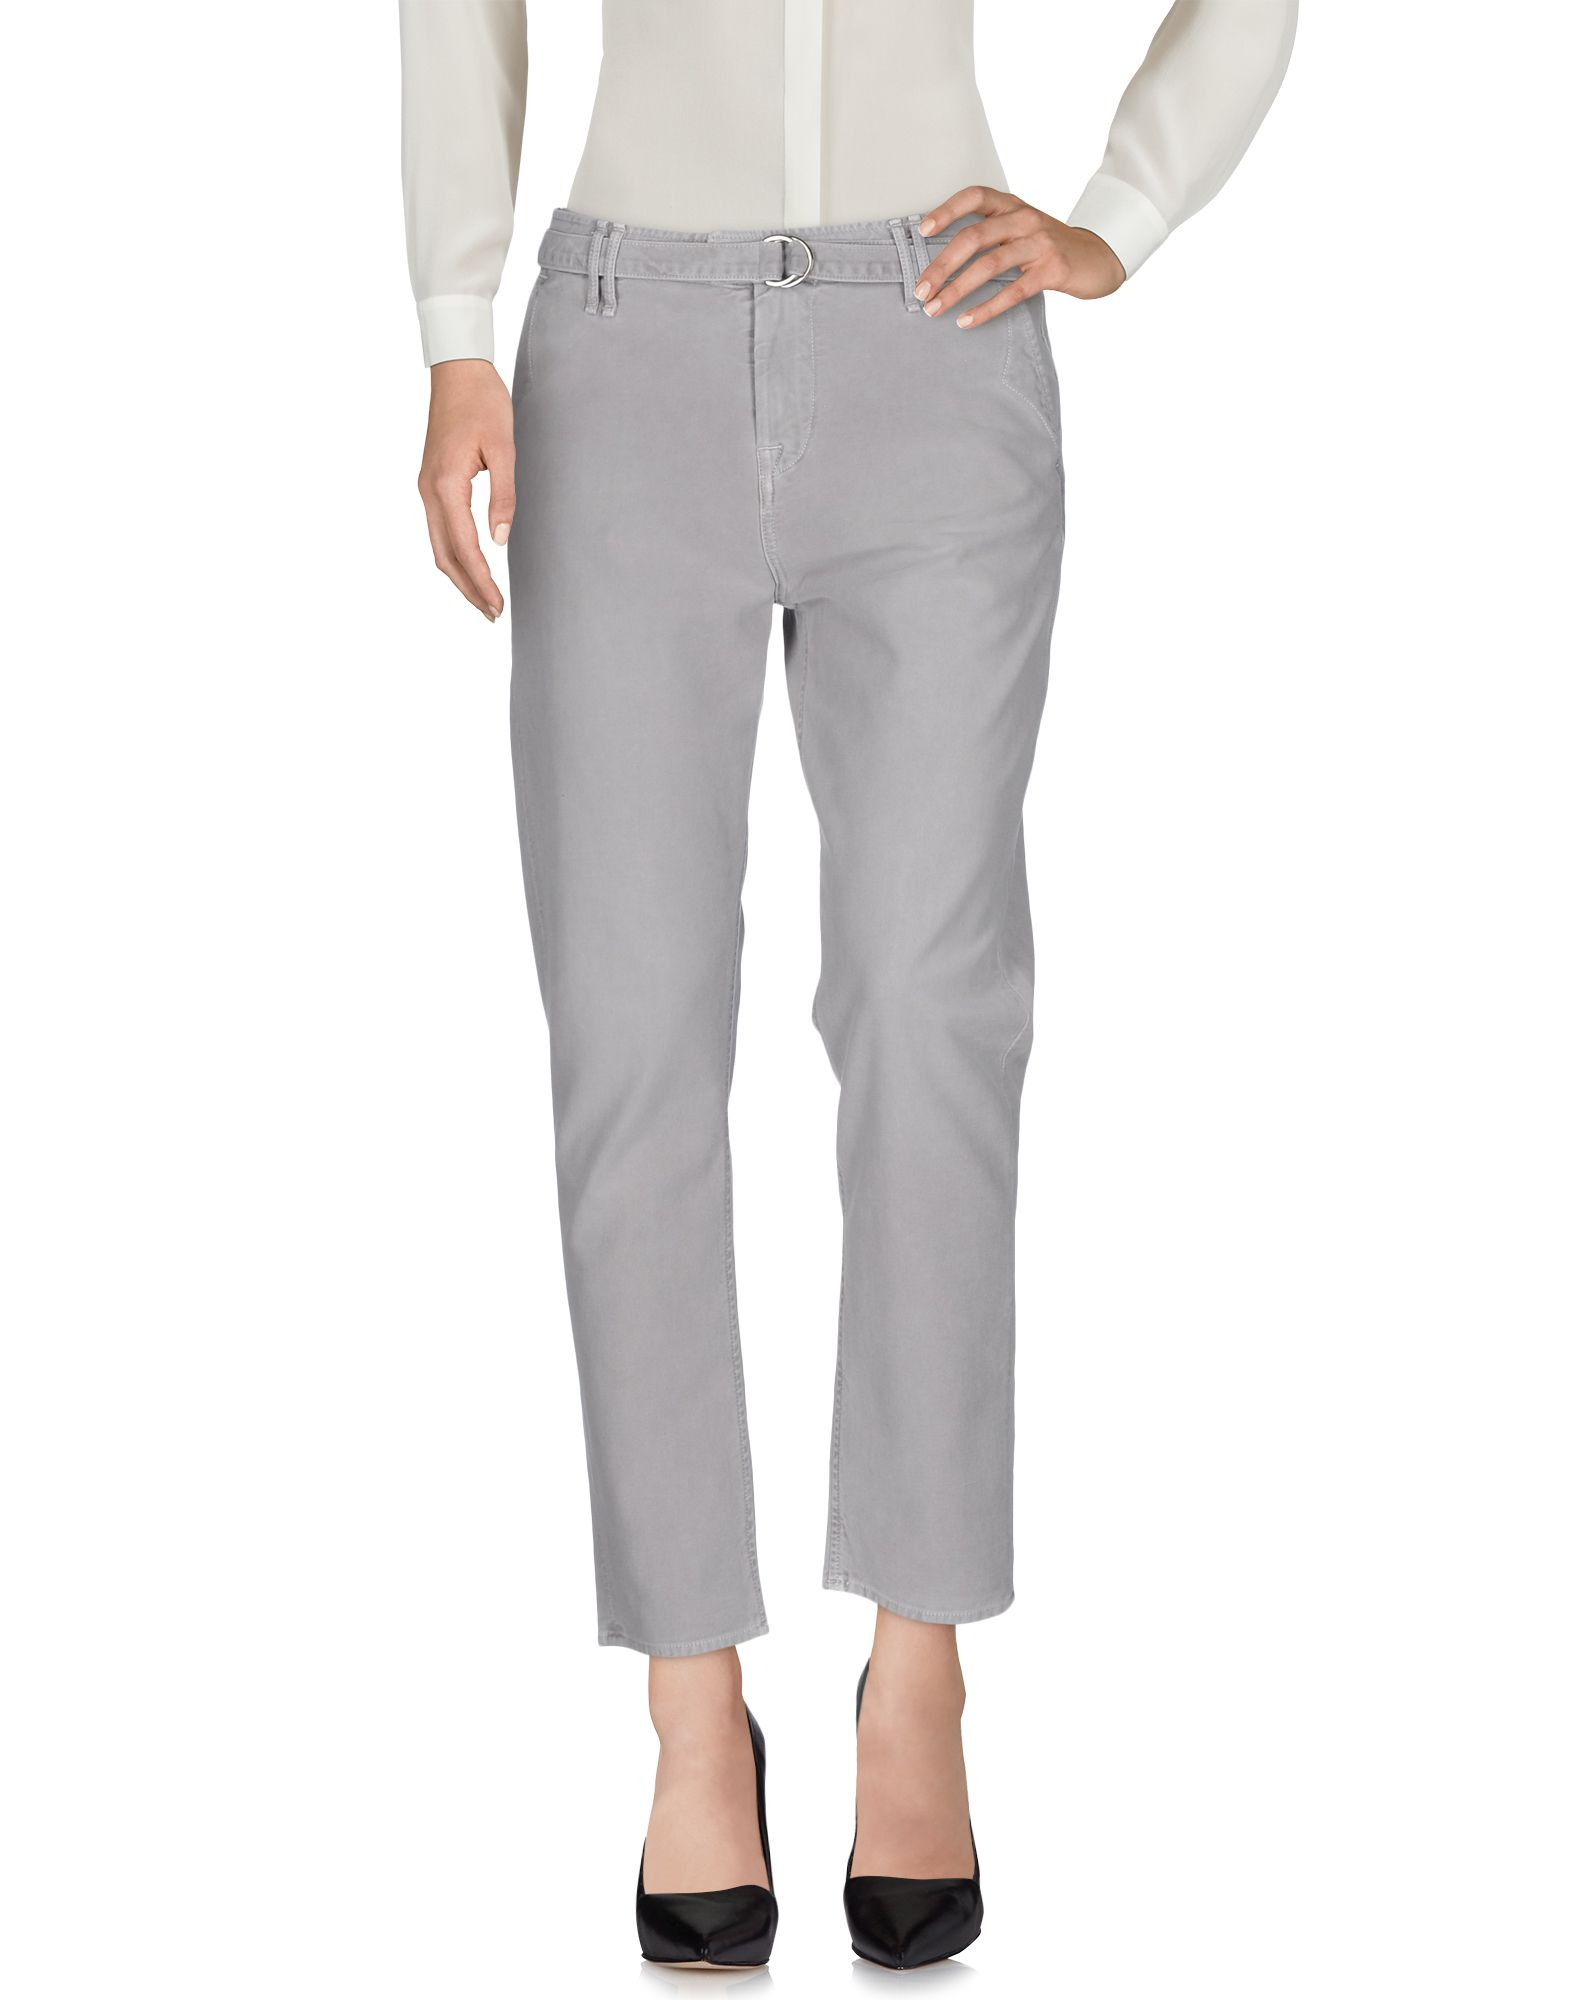 CYCLE Casual Pants in Light Grey